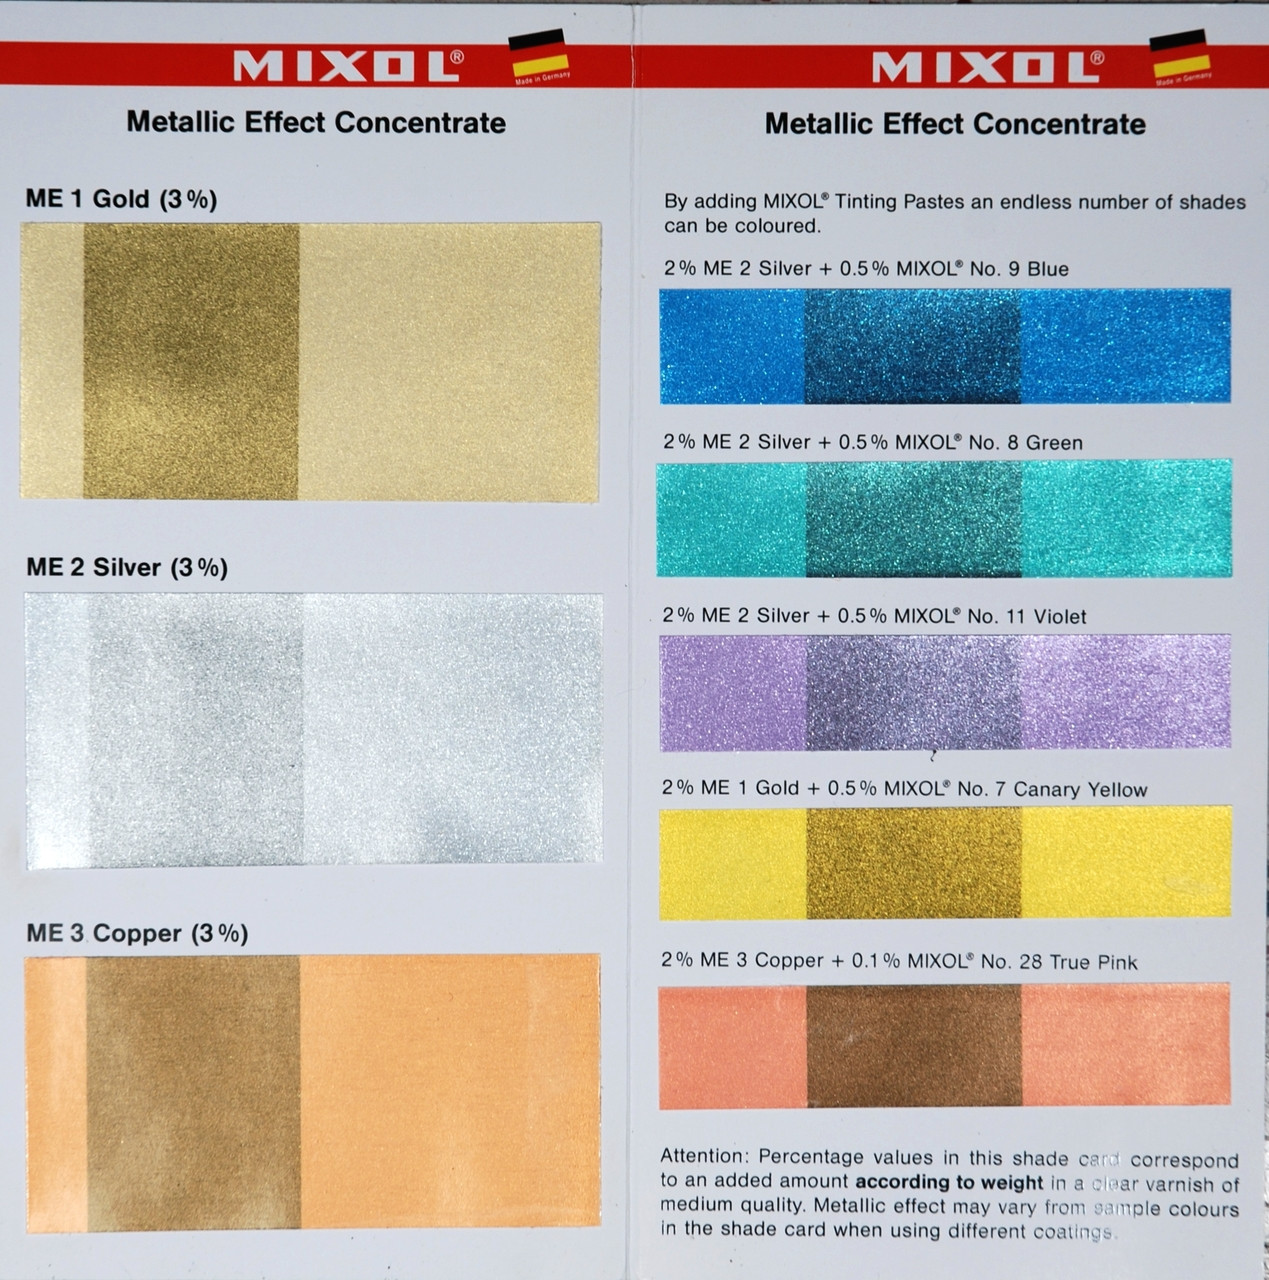 MIXOL Colorant Metallic